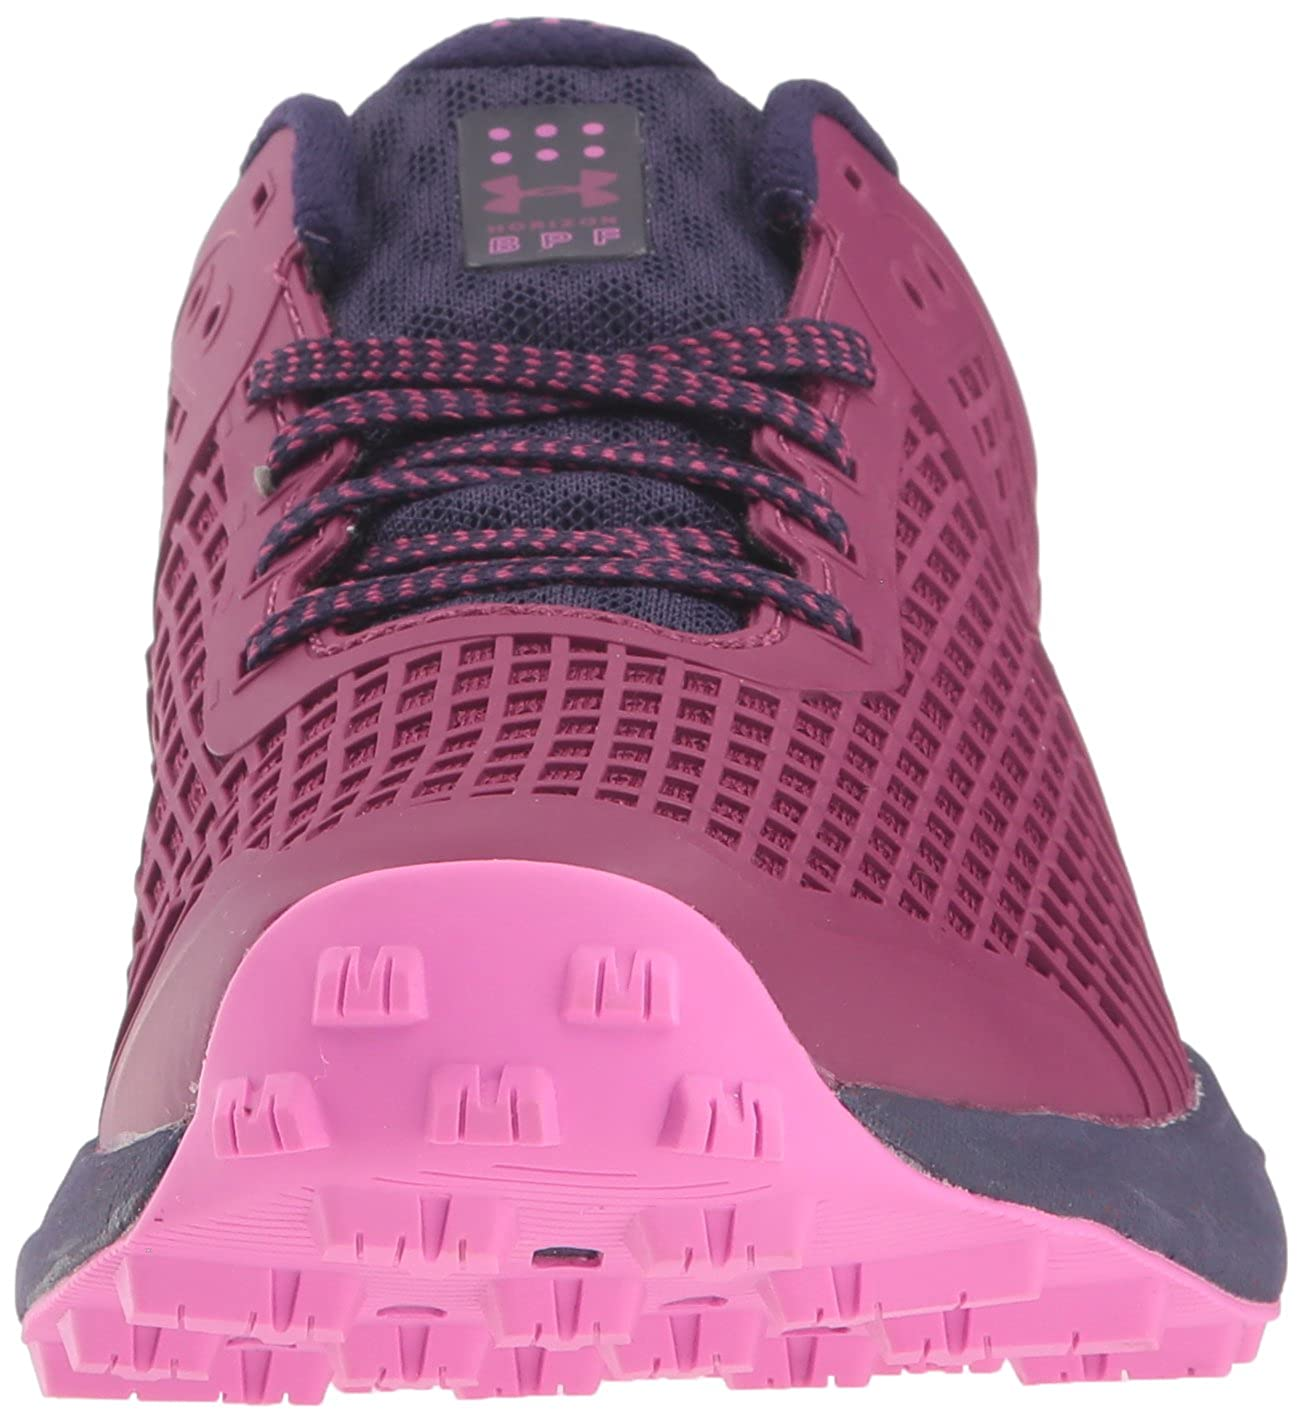 Femme Bpf Bpf Femme Under Armour3020298Horizon Armour3020298Horizon Under BWrCxode